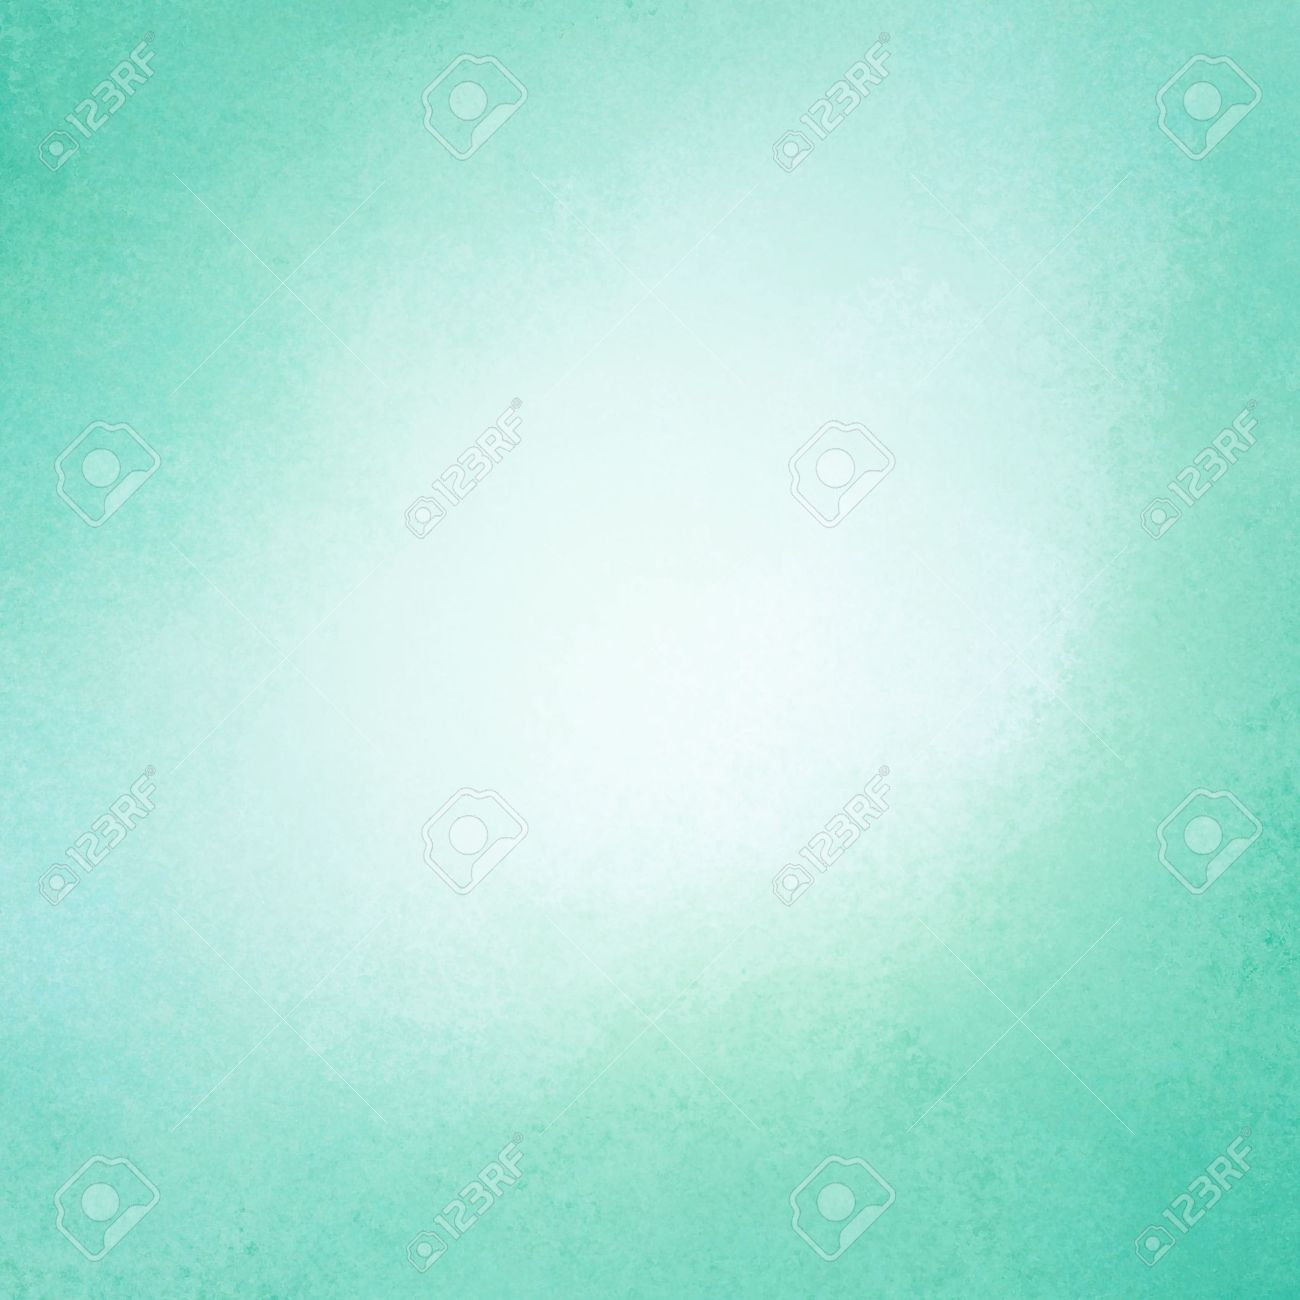 Soft Green Color Bright Blue Green Background Vintage Color And Sponged Distressed